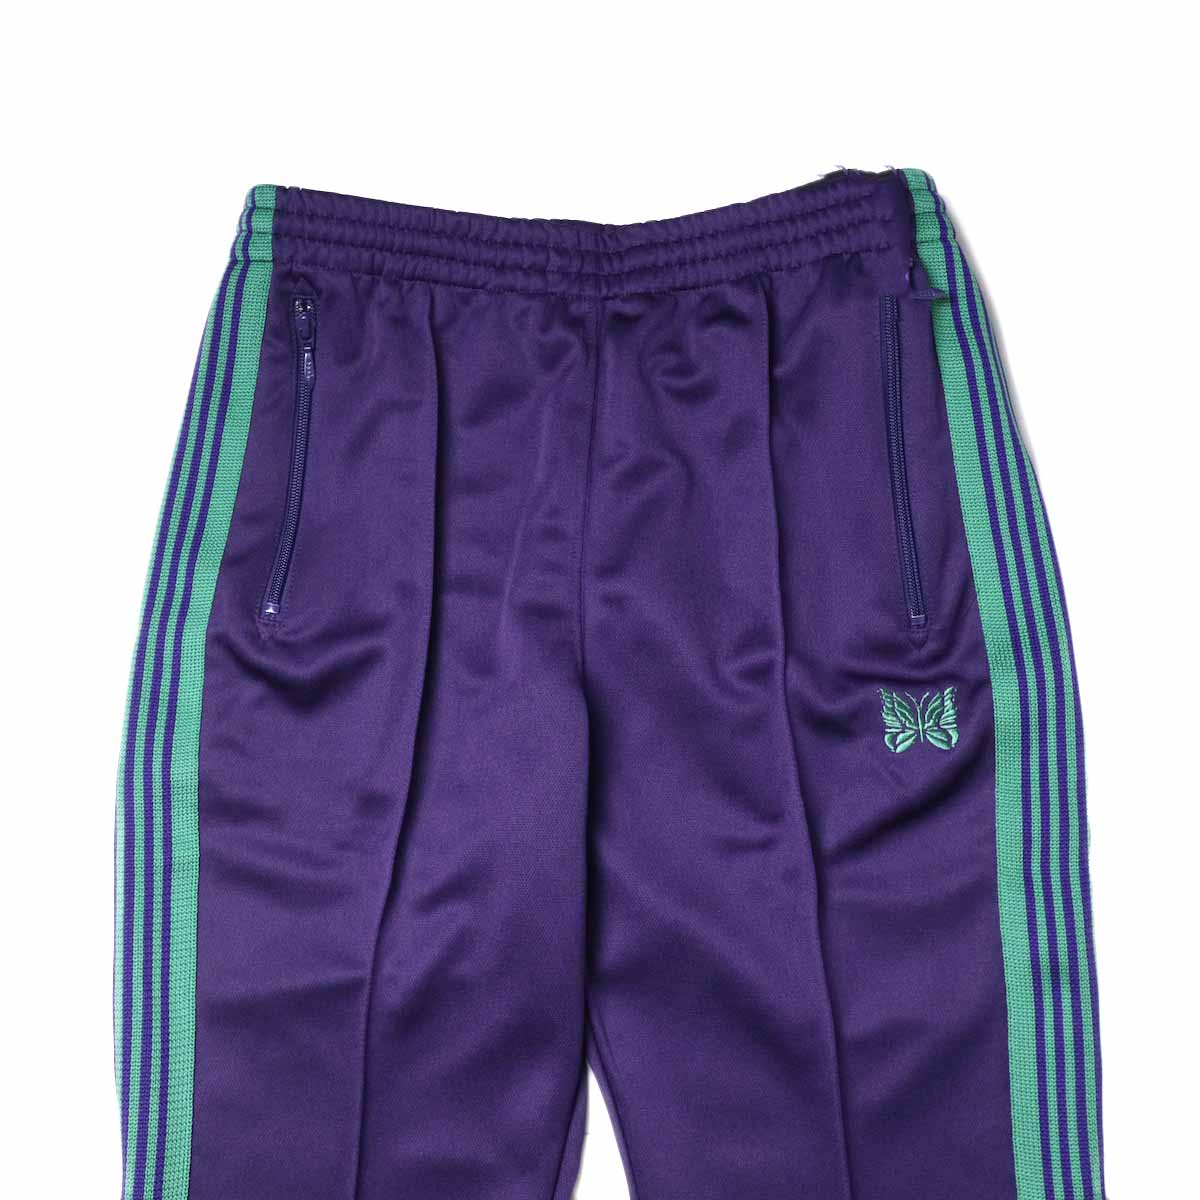 Needles / Boot-cut Track Pants -Poly Smooth (Eggplant)ウエスト